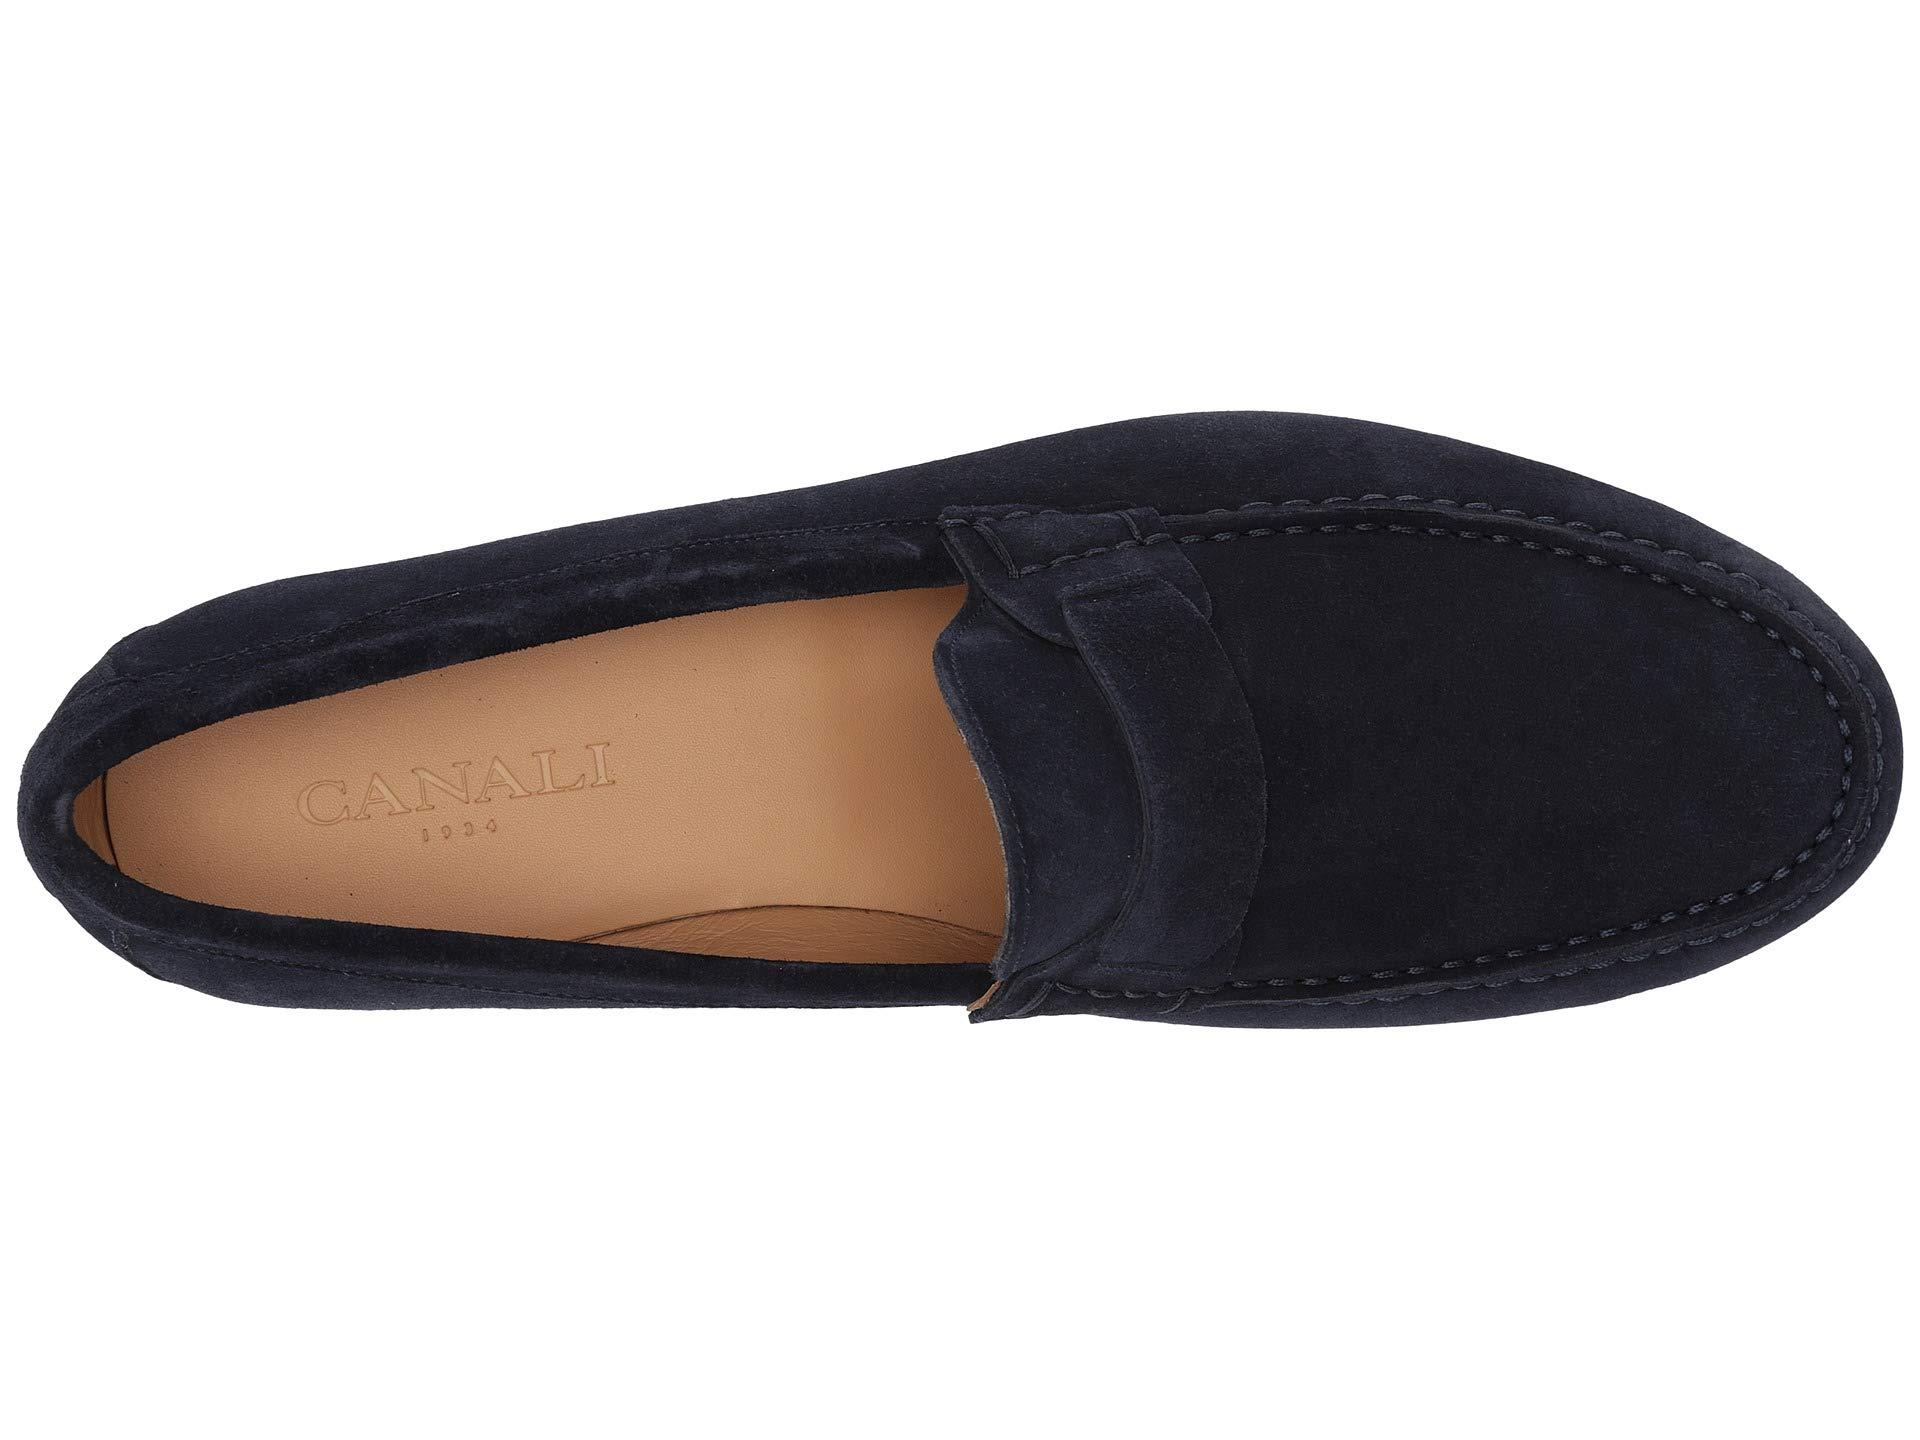 e381b4361e canali-Navy-Suede-Moccasin-Toe-Loafer-navy-Suede-Mens-Lace-Up-Moc-Toe-Shoes .jpeg